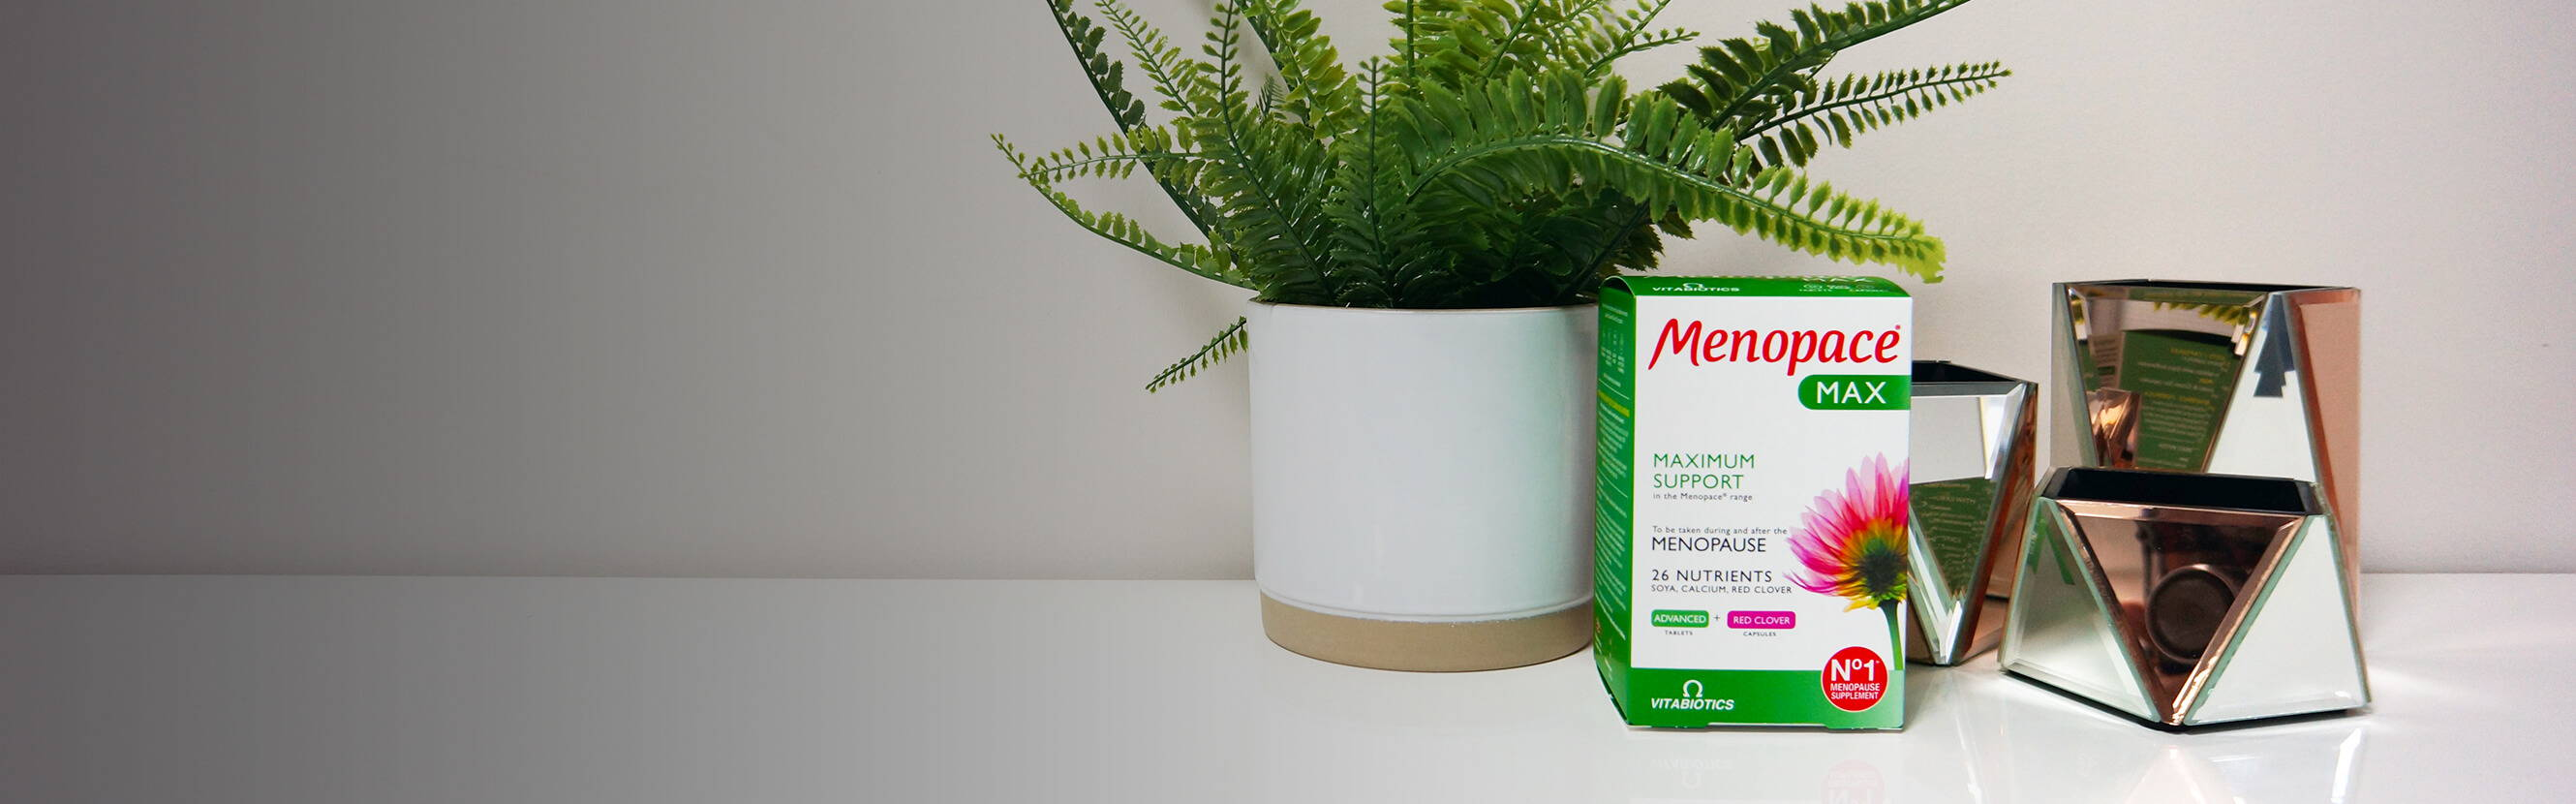 The menopause shouldn't mean you have to slow down. Menopace Max provides 26 nutrients including vitamin and mineral tablets with Calcium, which contributes to the maintenance of normal bones. It also includes Red Clover and Green Tea capsules.